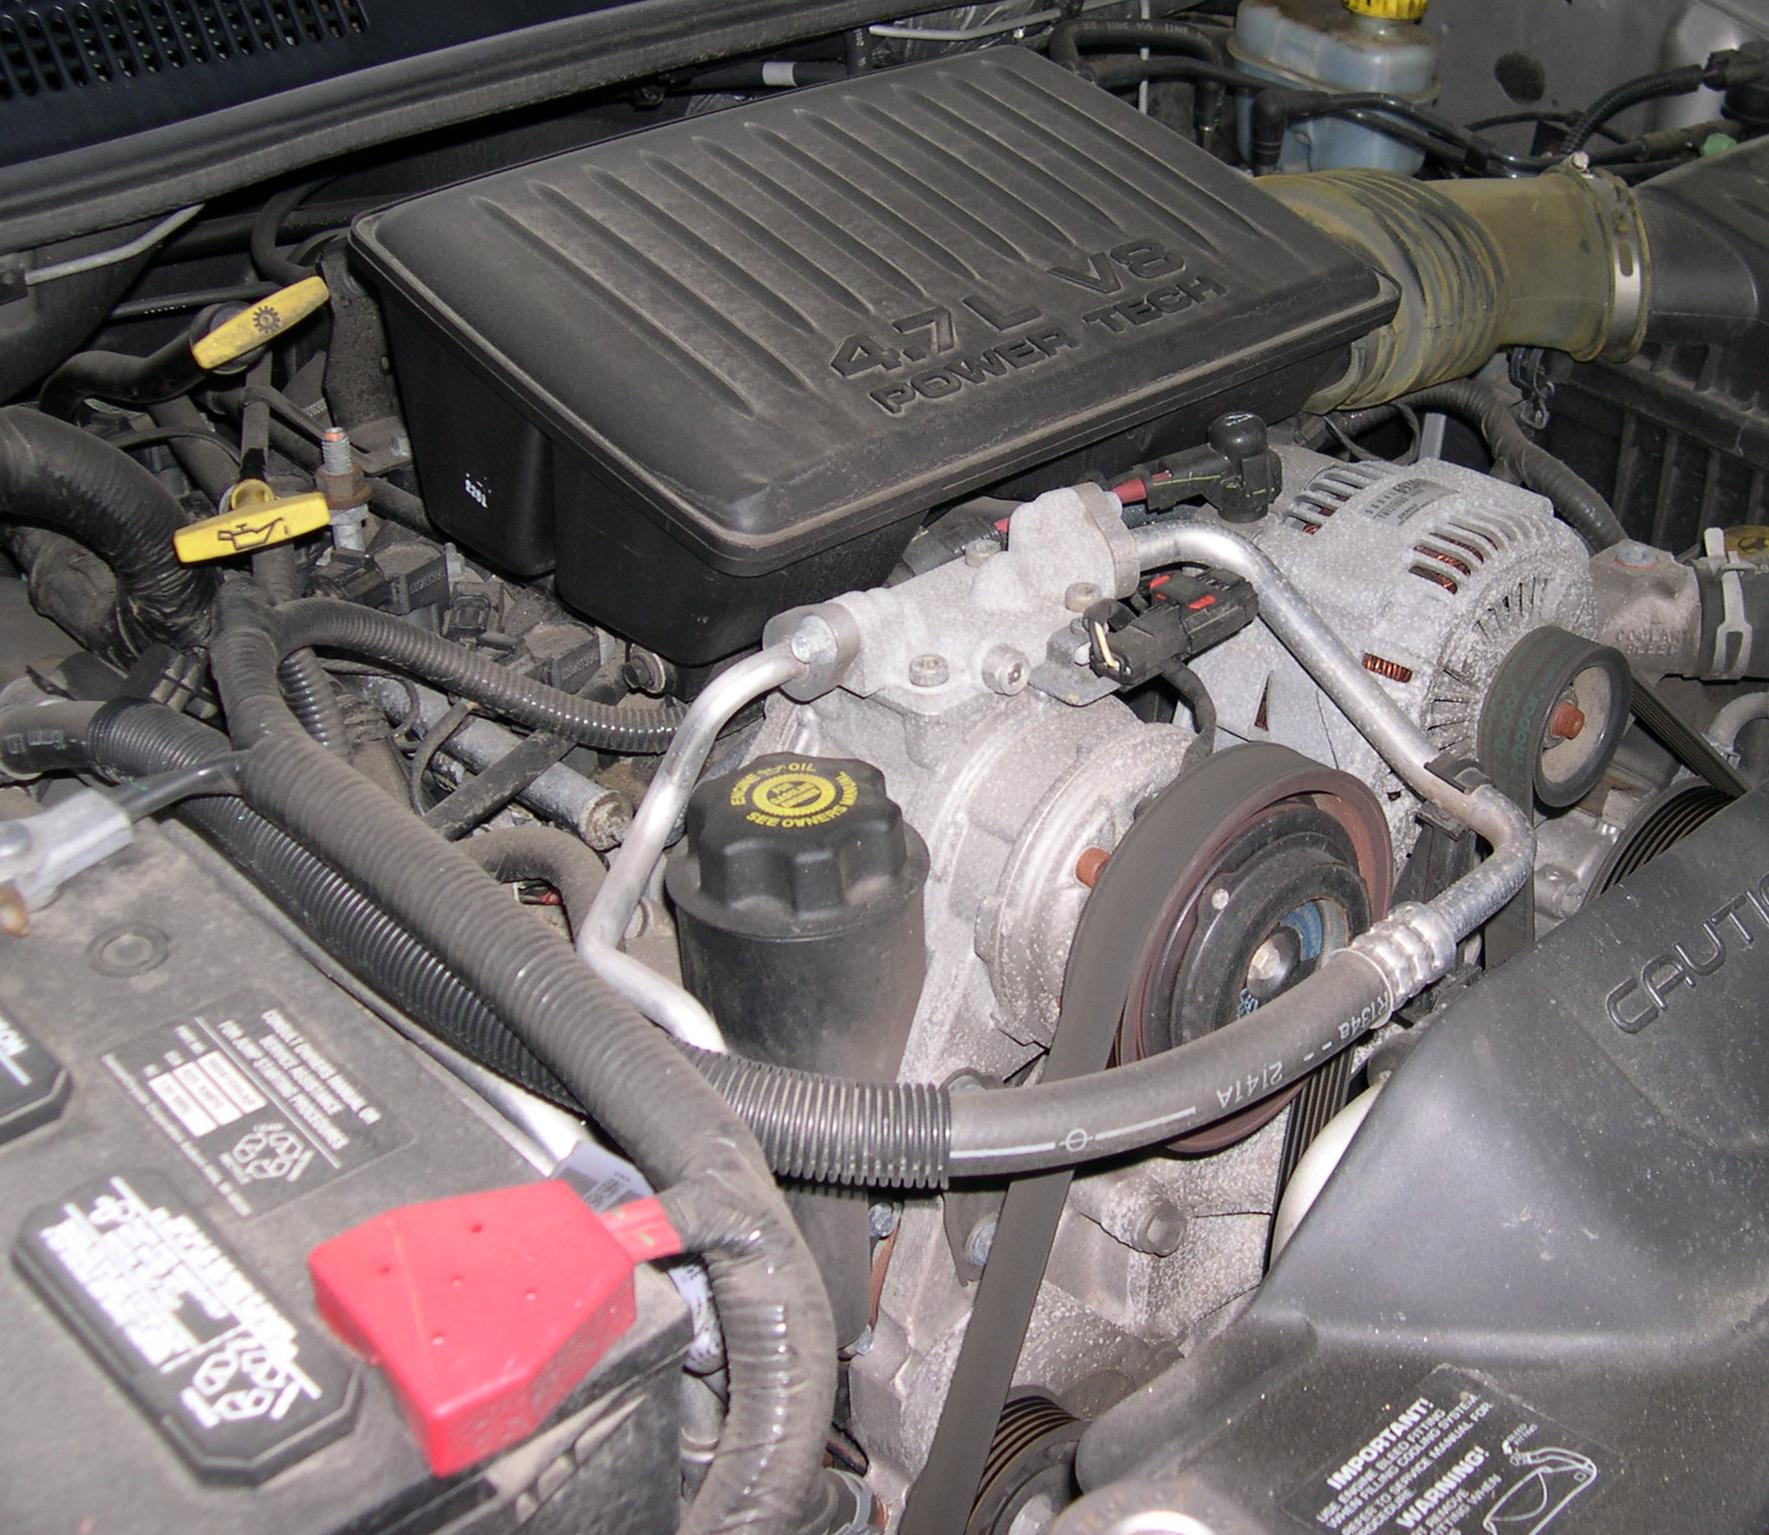 Chrysler Powertech Engine Wikipedia Chrysler Engines 3.8 Specs 2000 Chrysler  3 8 Engine Diagram